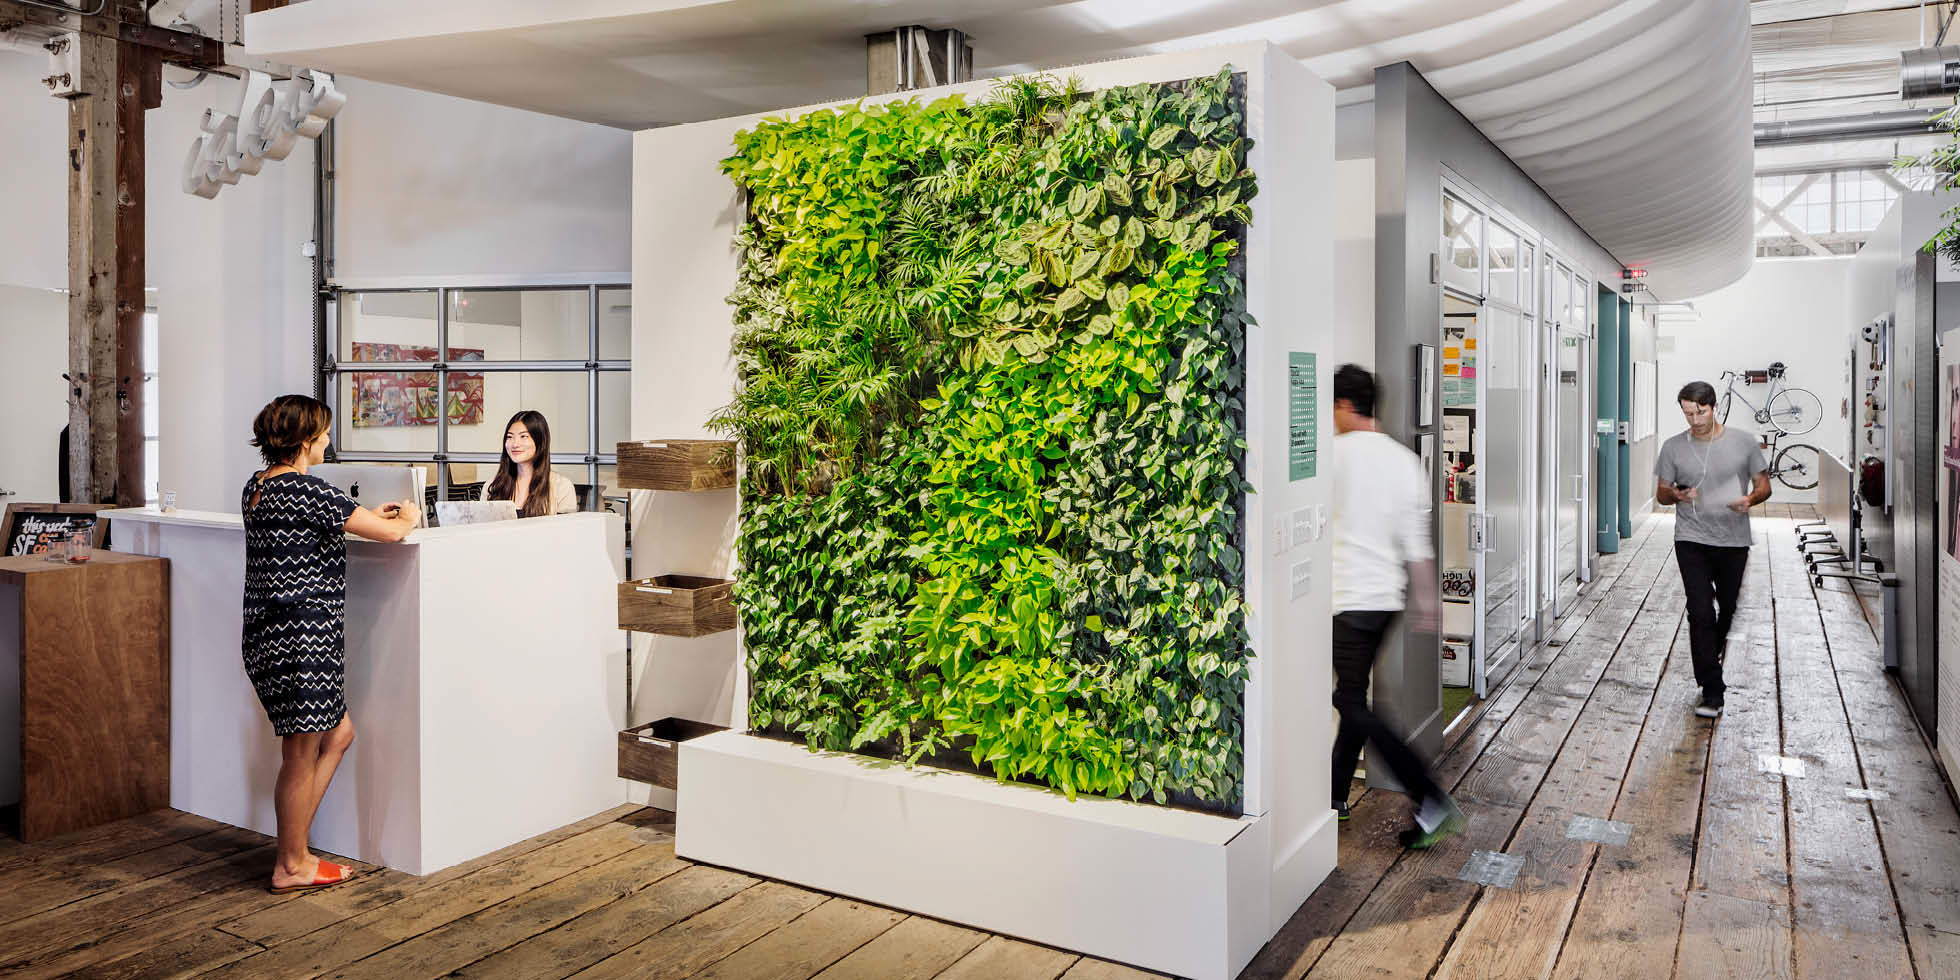 Habitat horticulture ideo living wall for Ideo san francisco